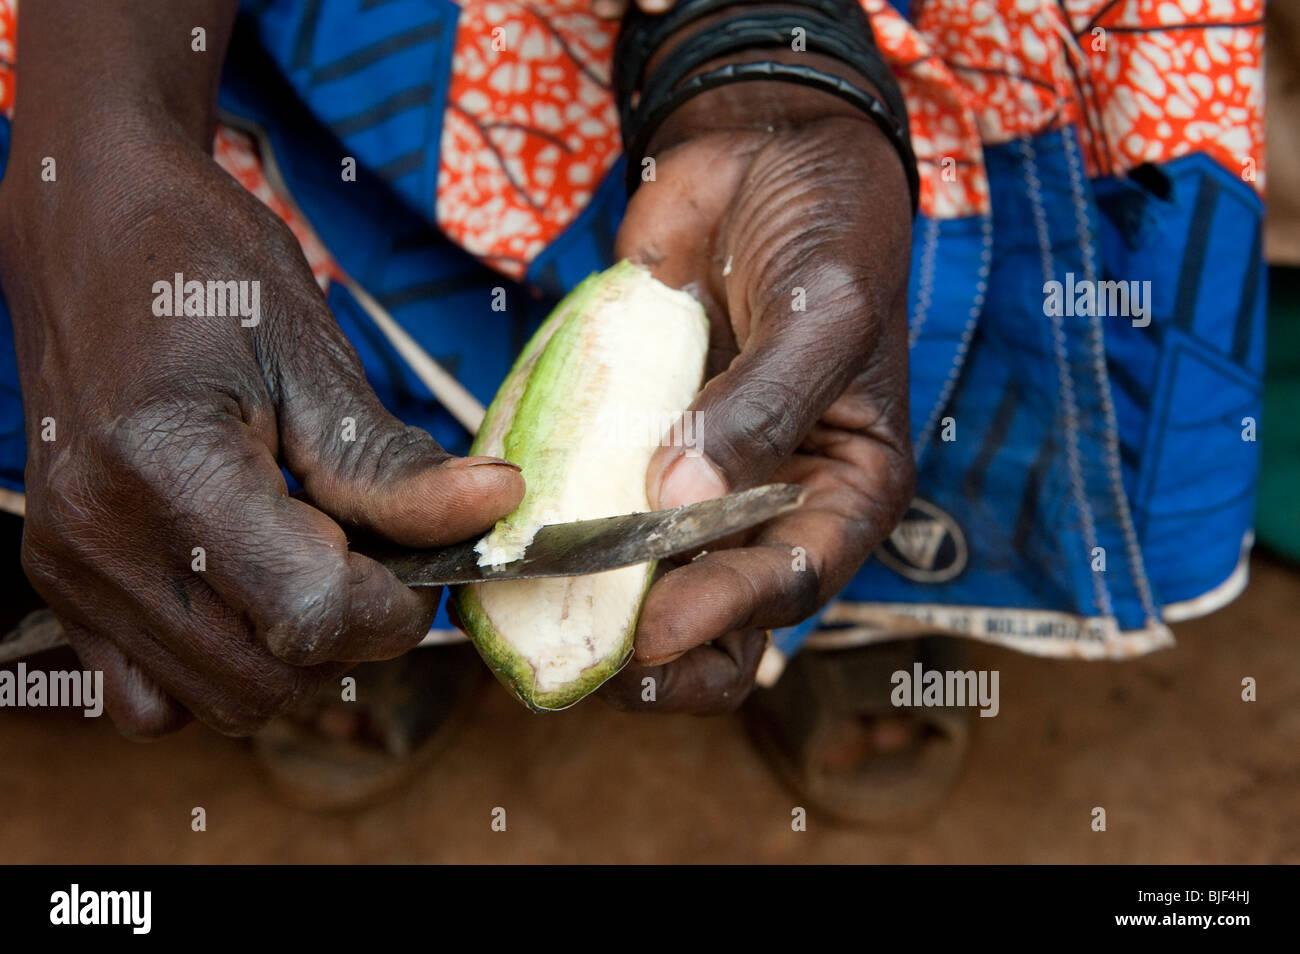 Lady peeling a green banana for food. They are the staple food for many familes in Rwanda. - Stock Image